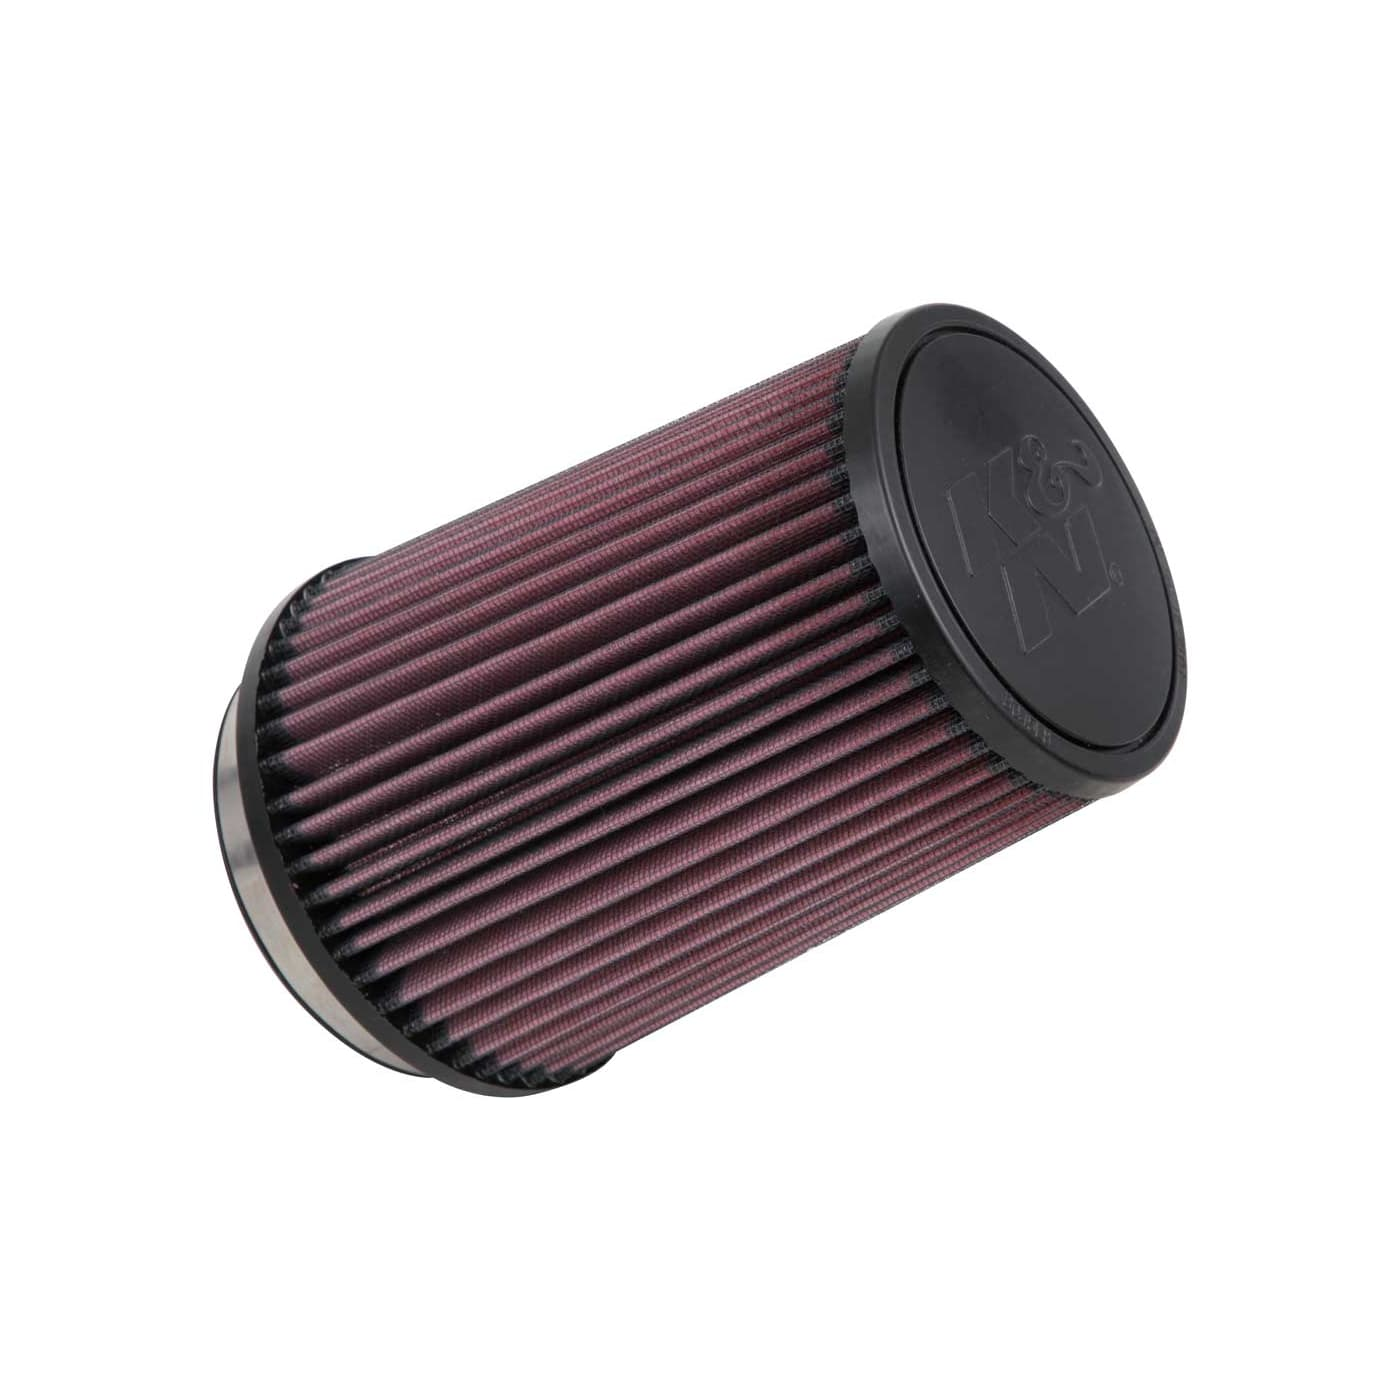 K/&N Filters RU-0950 Universal Air Cleaner Assembly